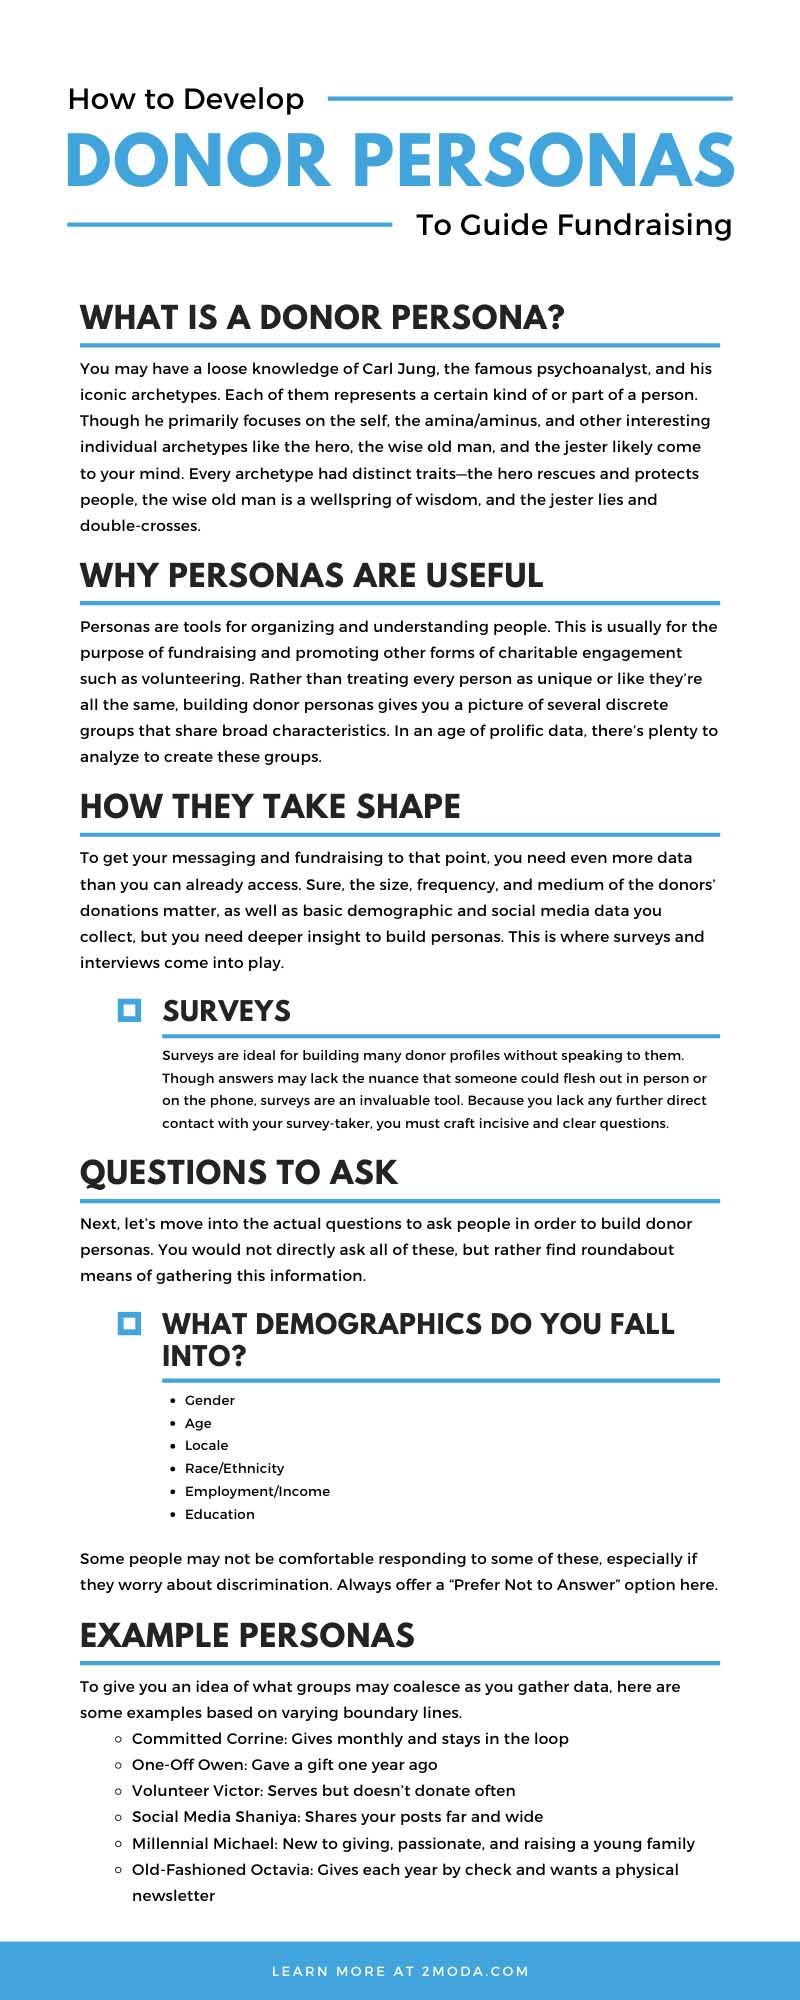 How to Develop Donor Personas To Guide Fundraising